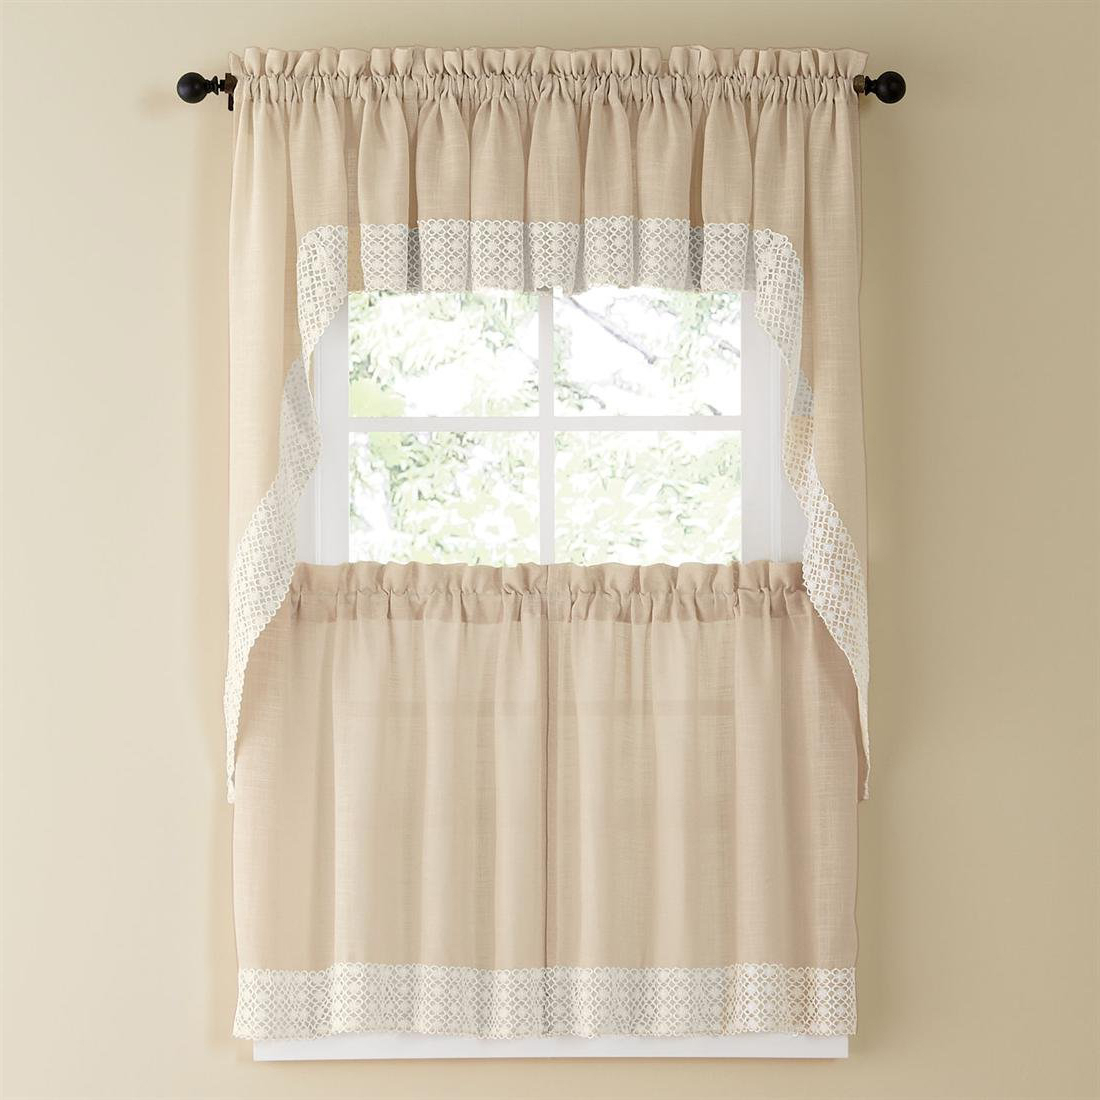 Latest Details About Salem Kitchen Curtain – French Vanilla W/lace Trim – Lorraine Home Fashions For Tranquility Curtain Tier Pairs (View 19 of 20)